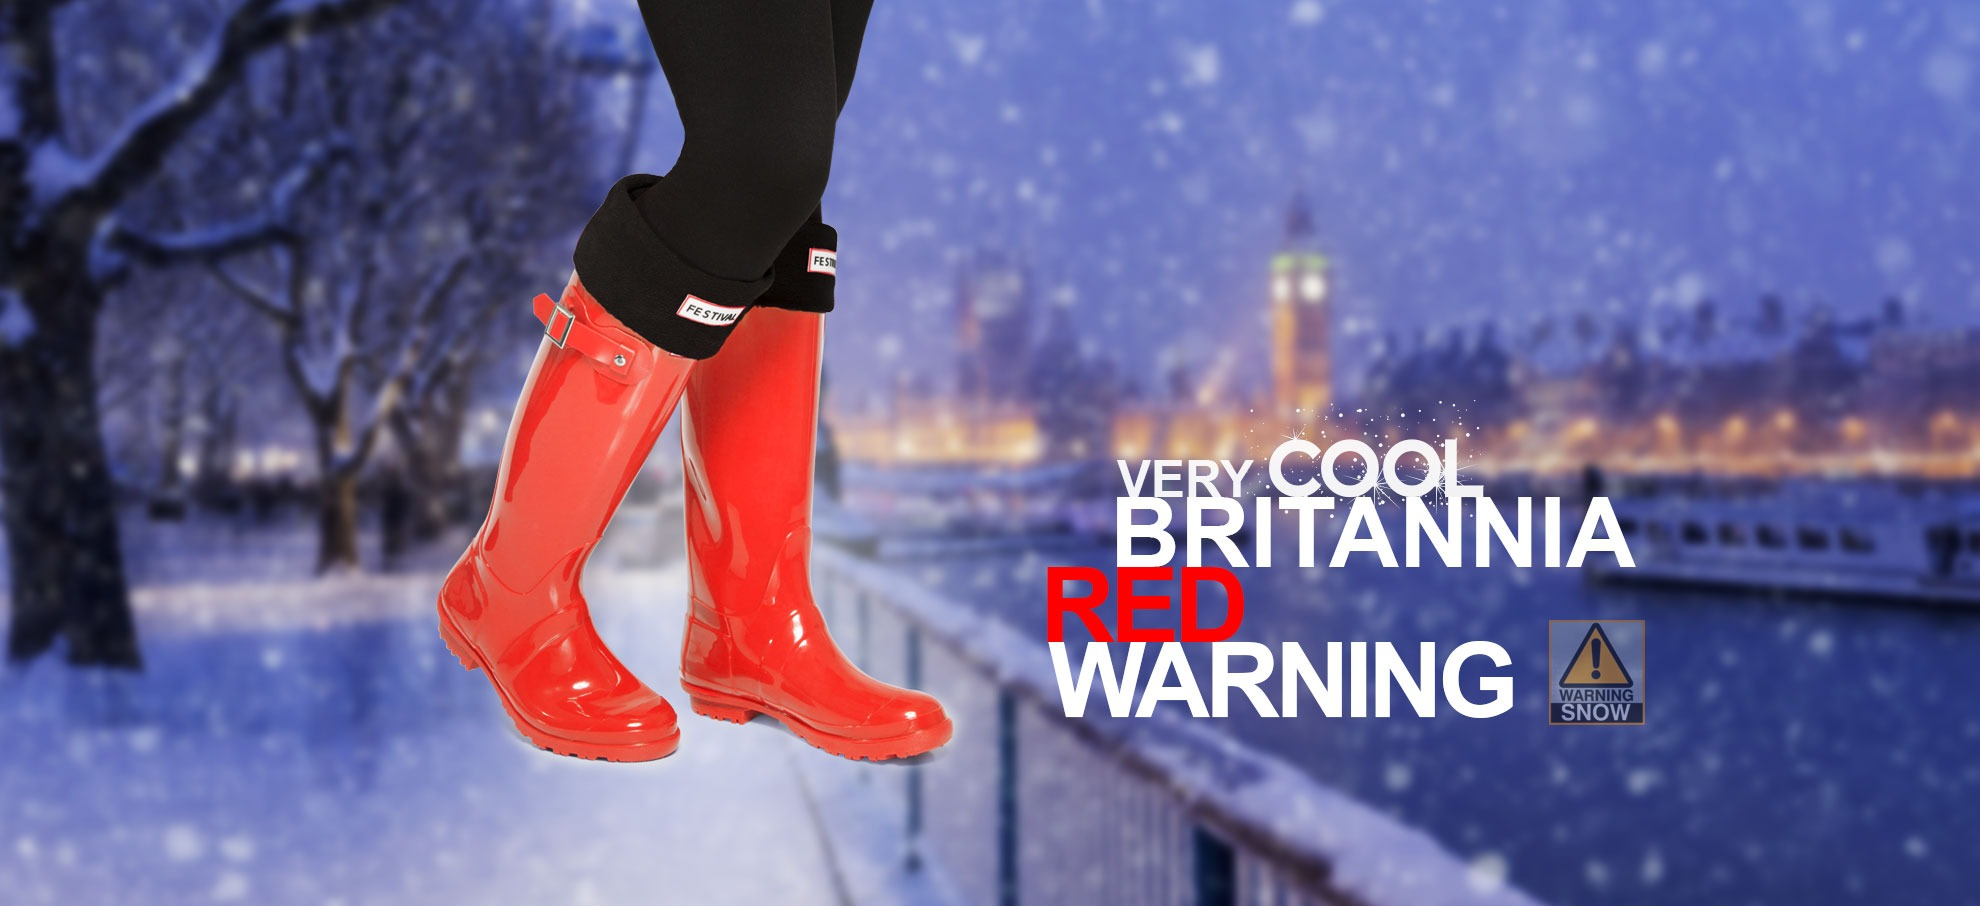 RED WEATHER SNOW WARNING FOR UK